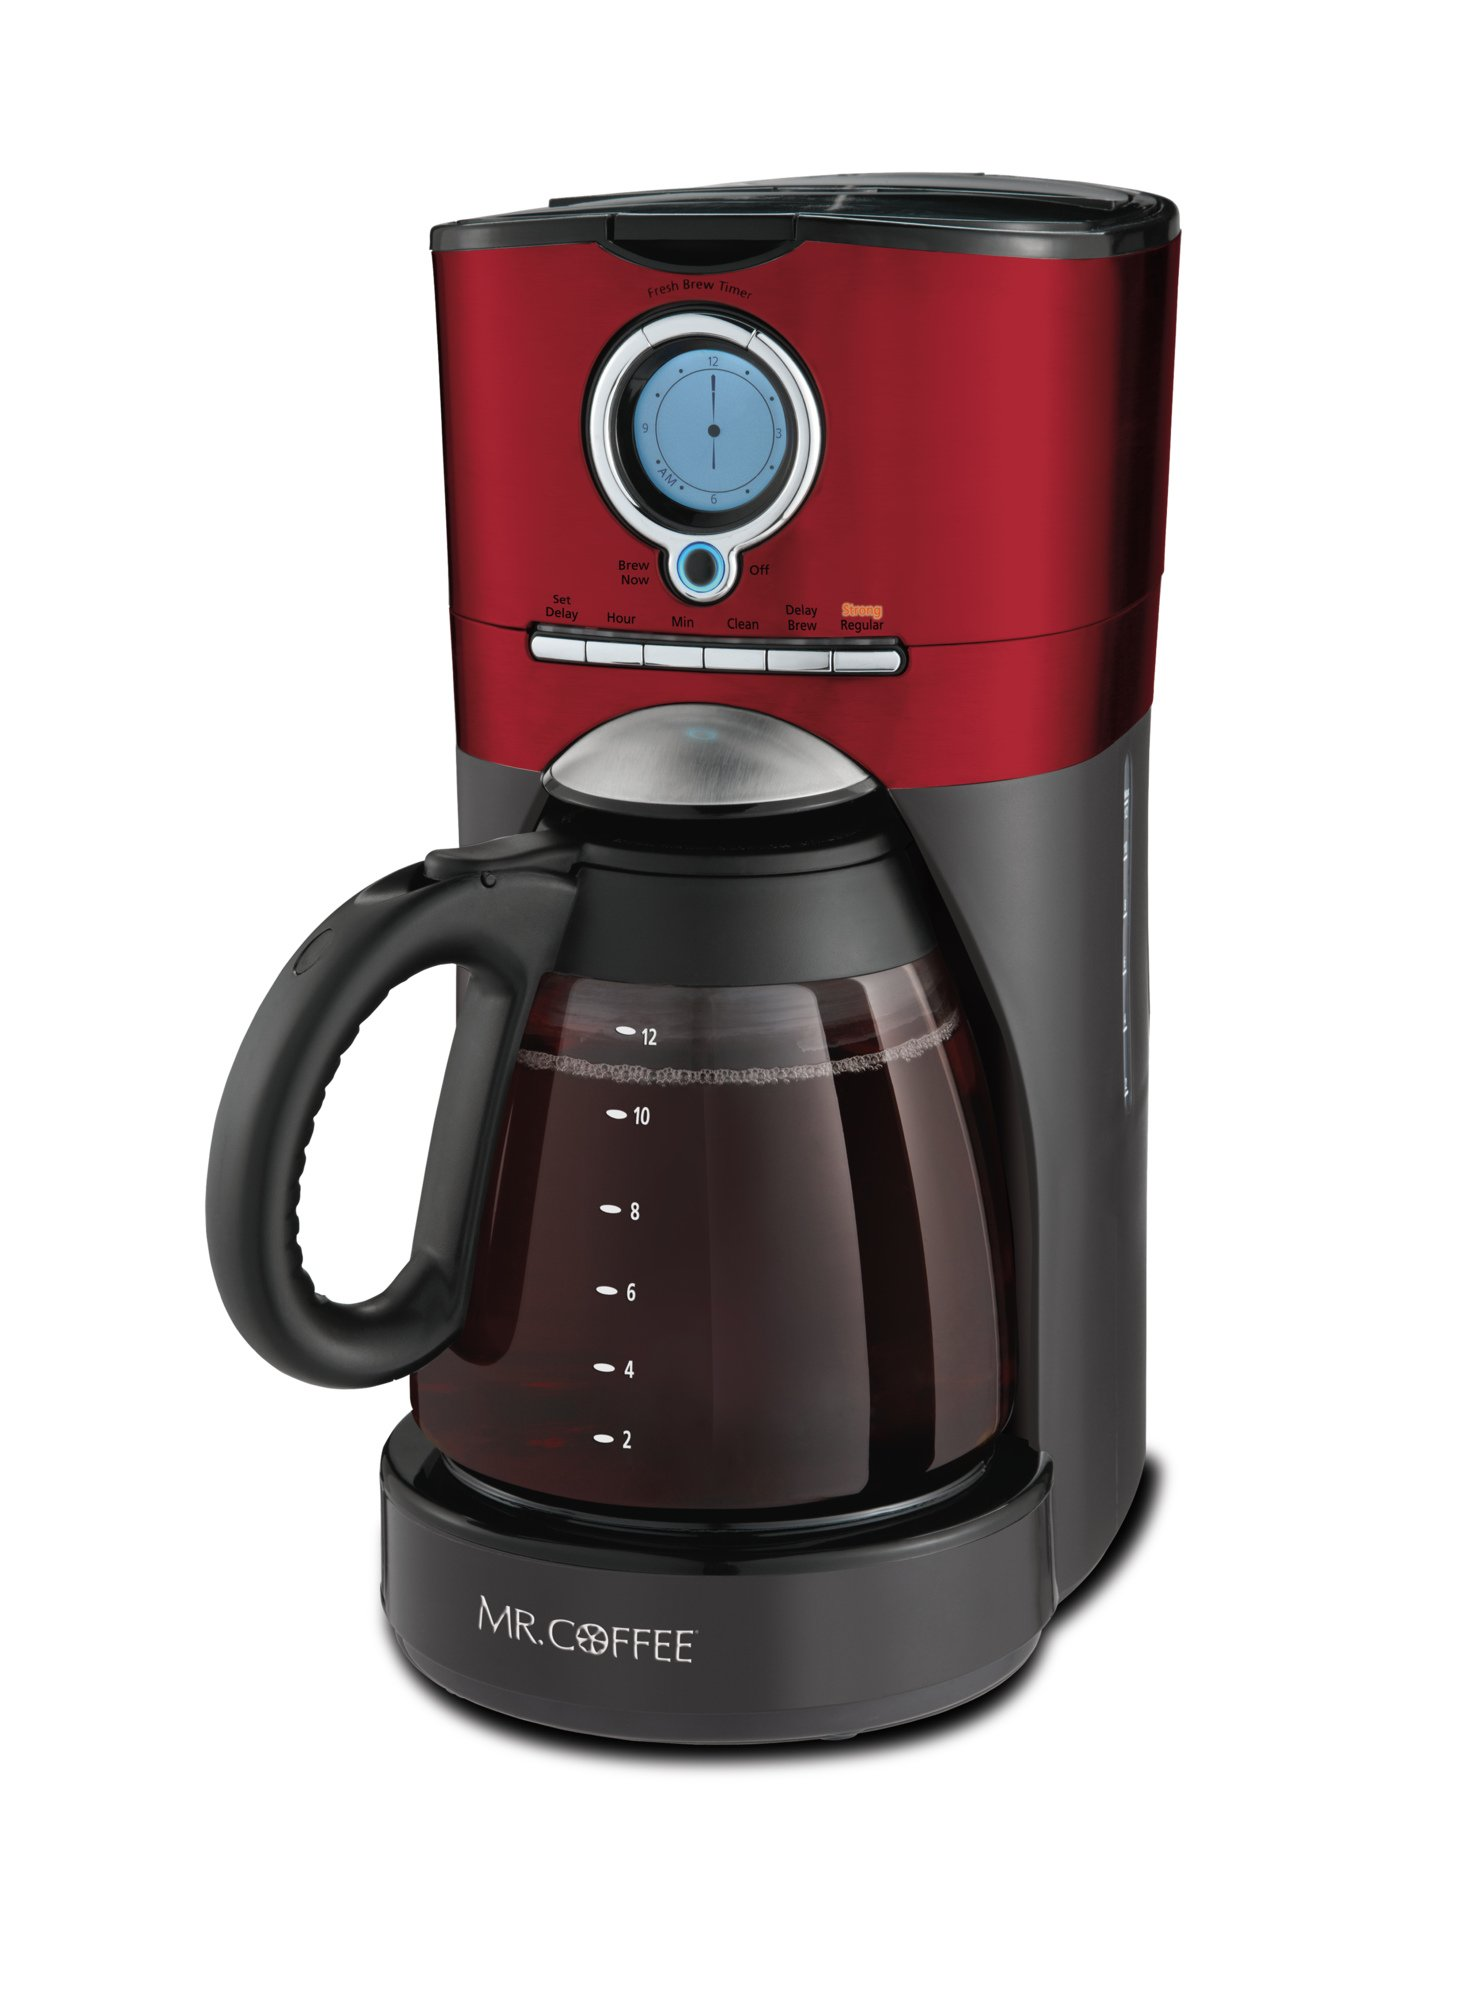 Mr. Coffee Performance Brew 12-Cup Programmable Coffee Maker, Red/Black/Stainless Steel